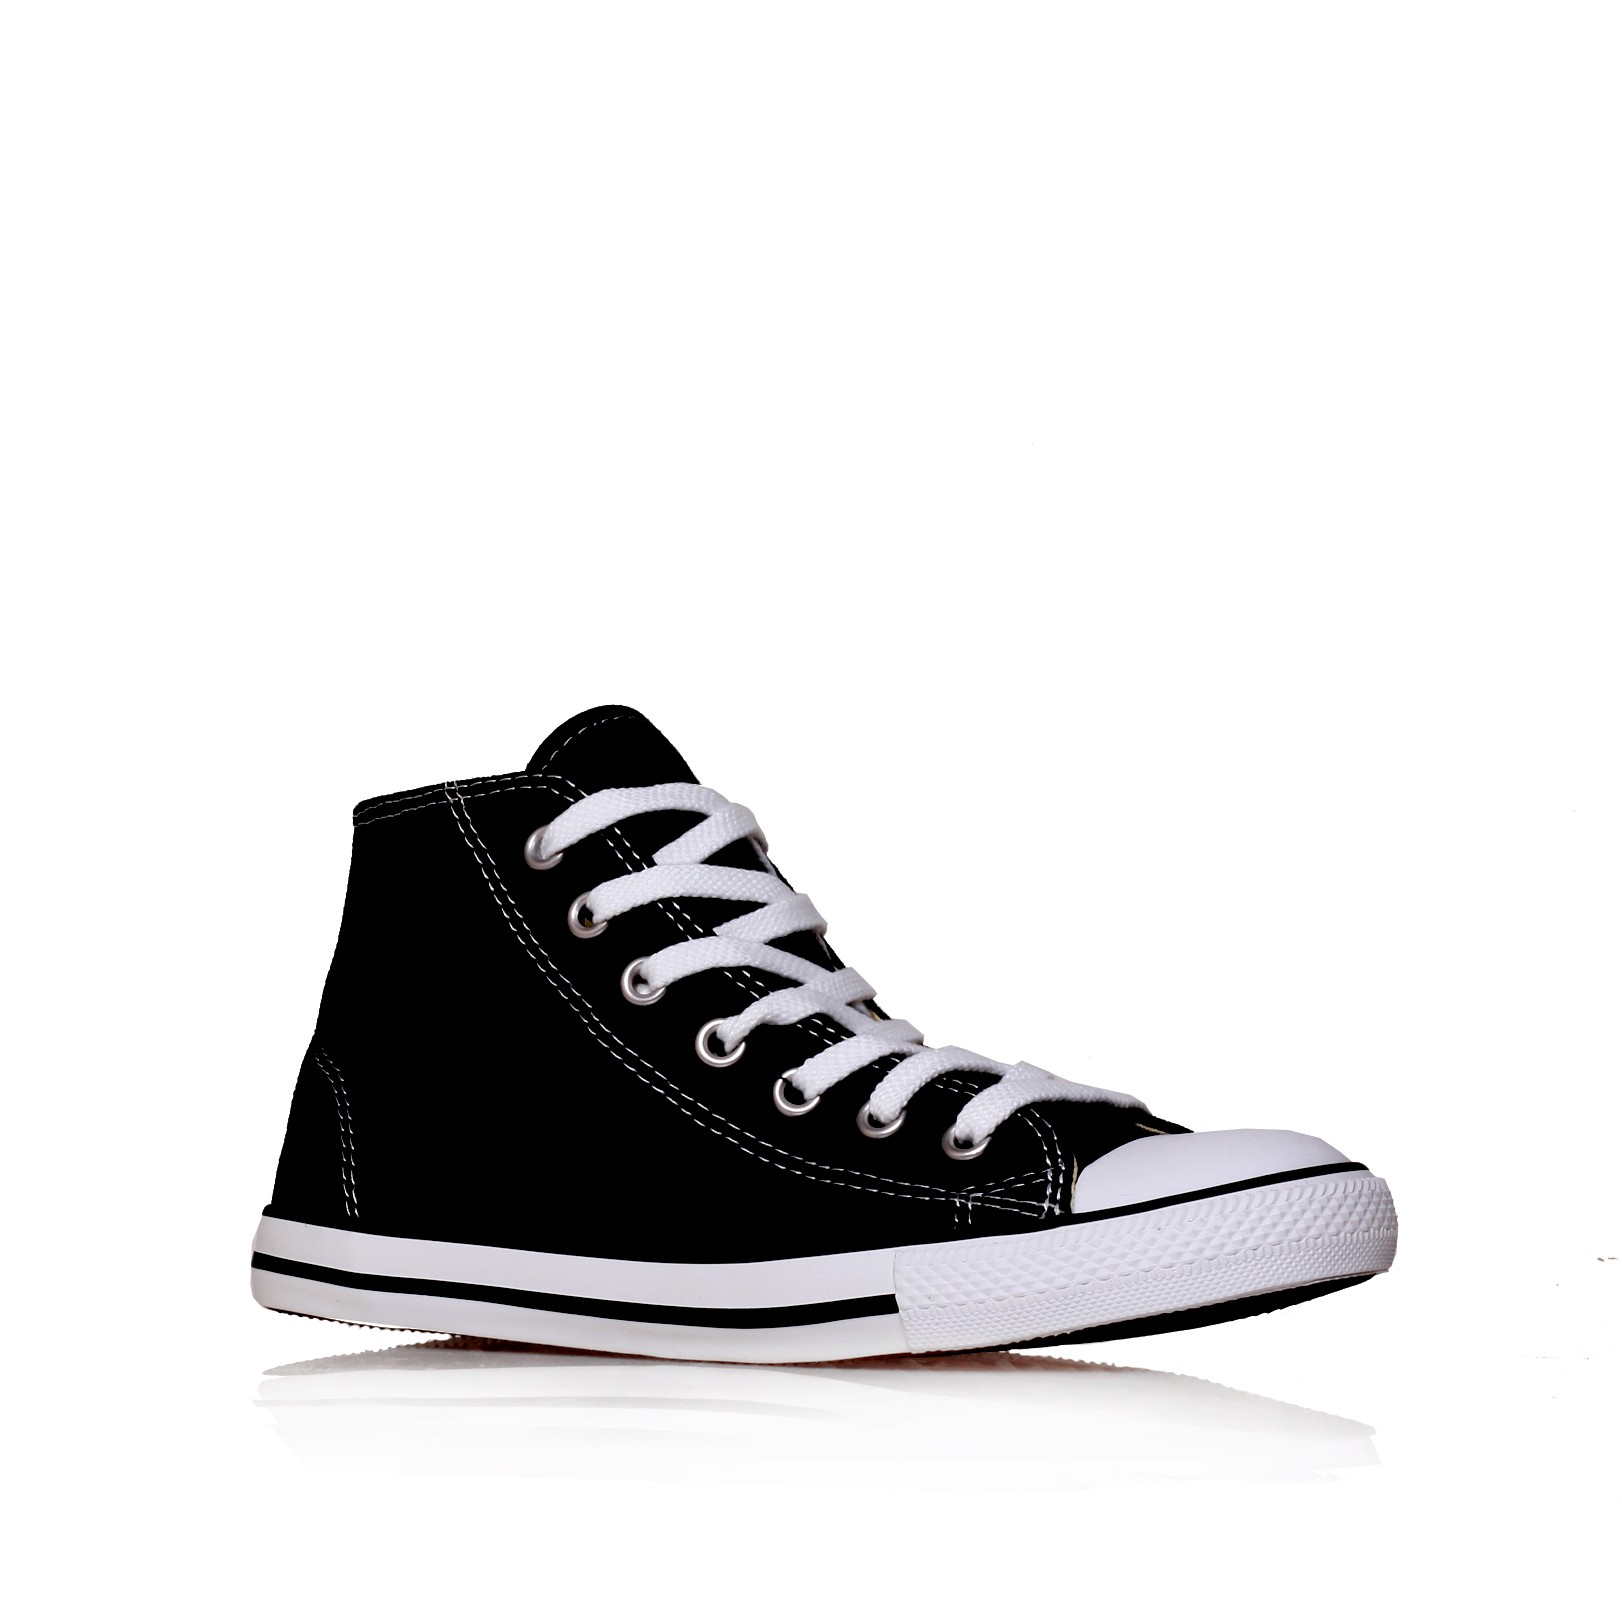 converse dainty ox high. Black Bedroom Furniture Sets. Home Design Ideas